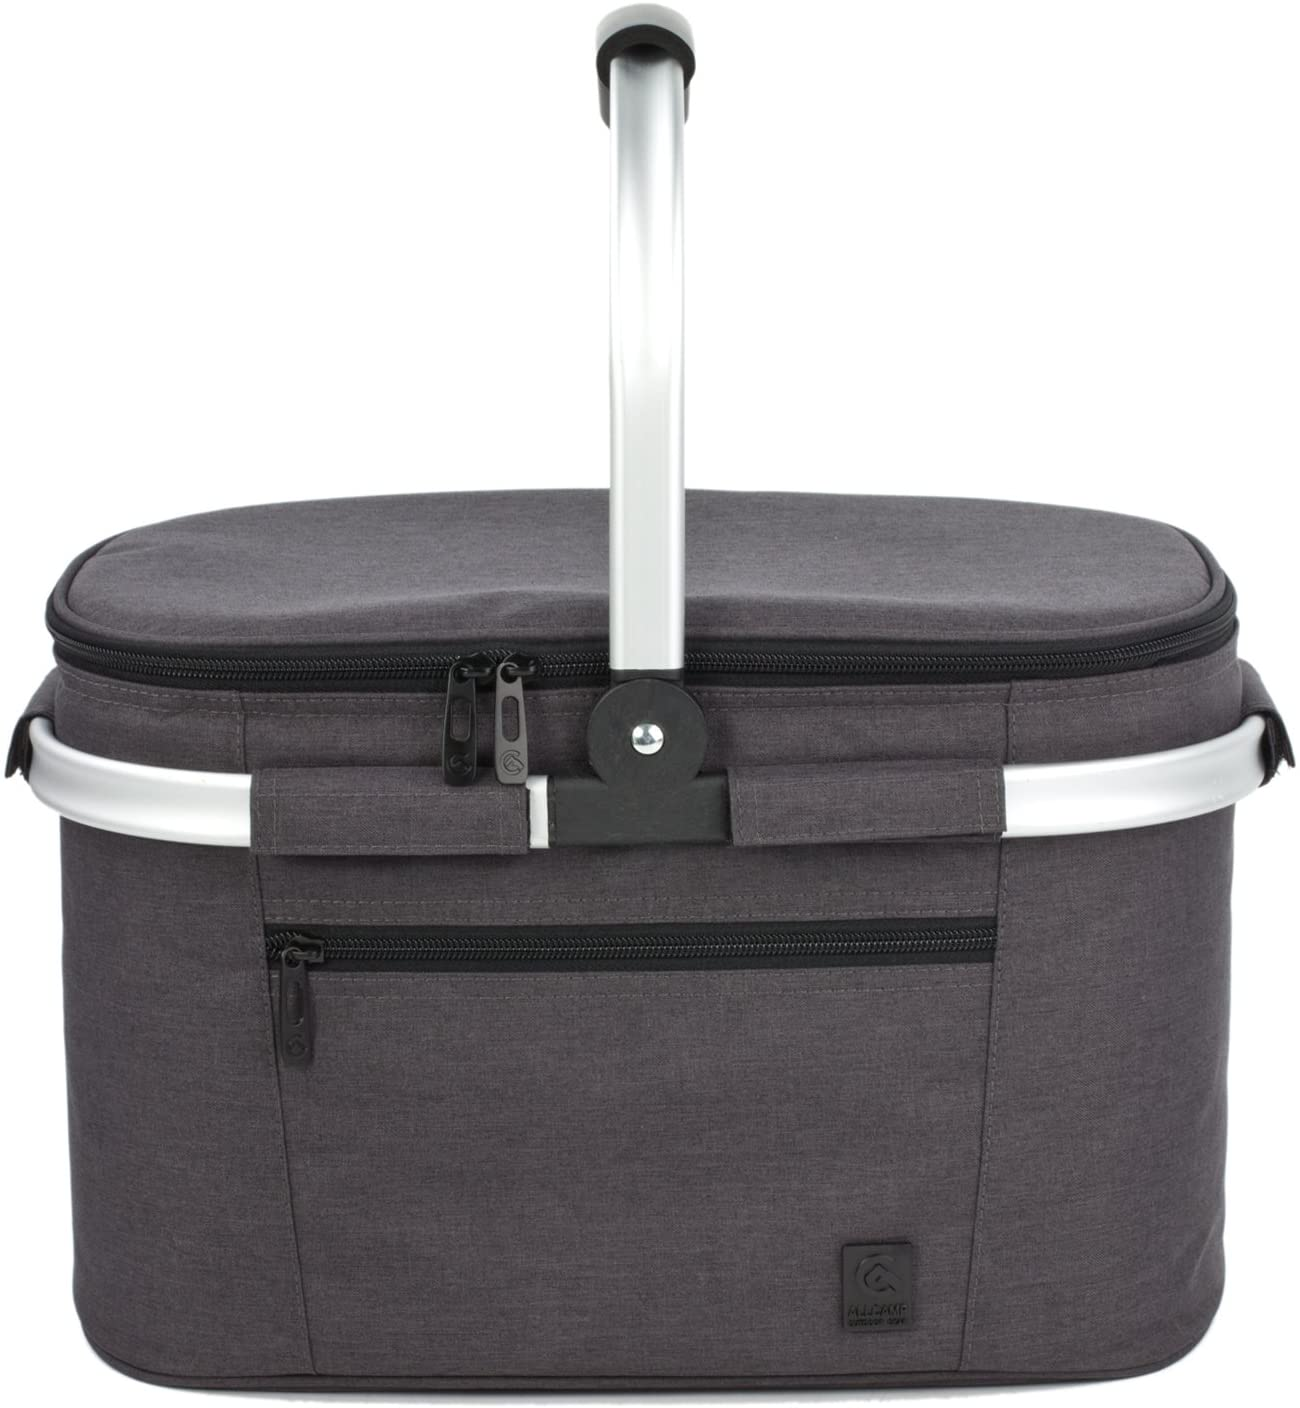 ALLCAMP Large Size Insulated Cooler